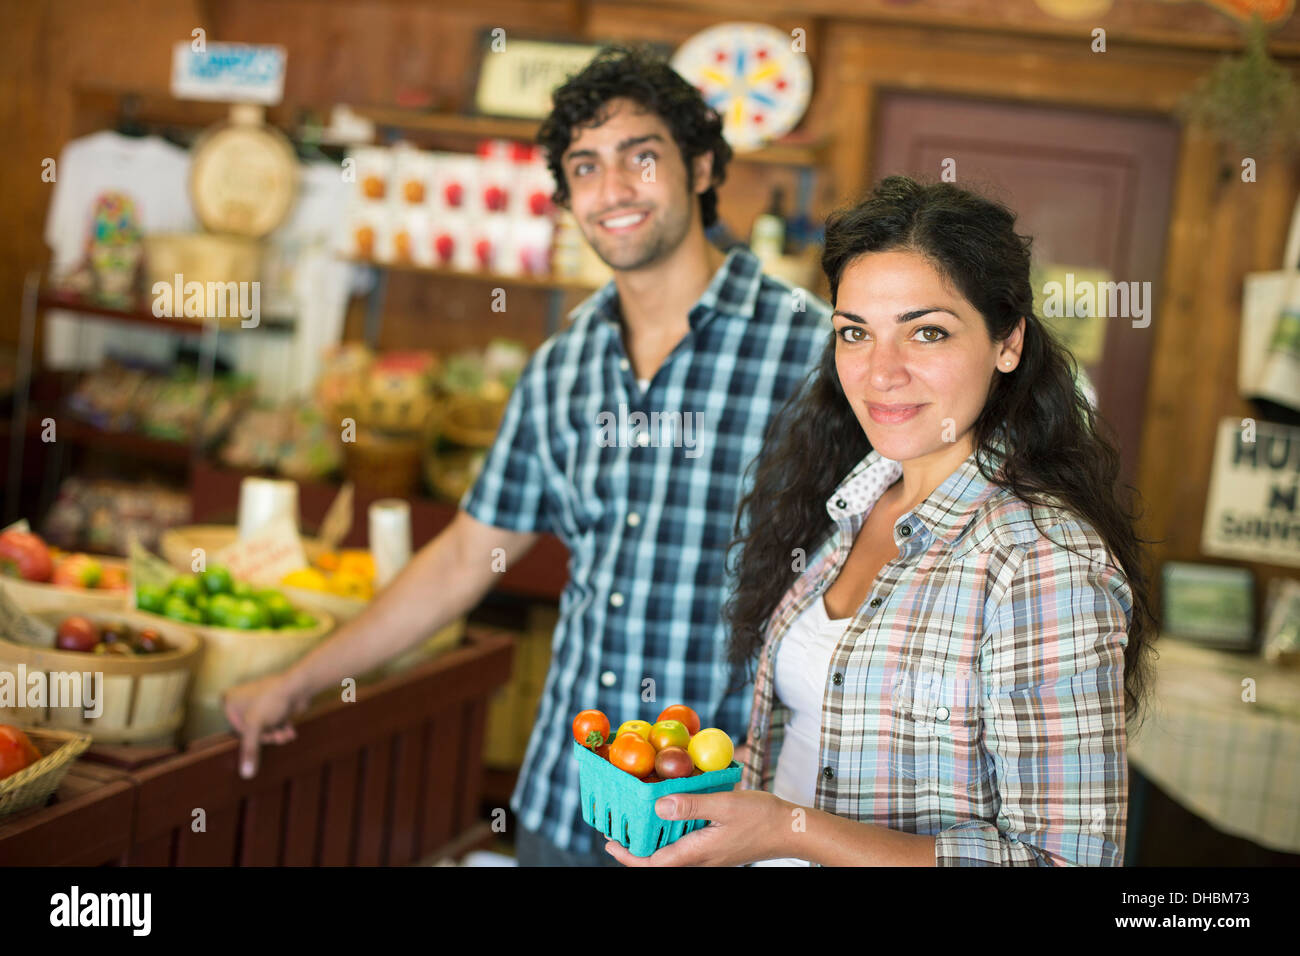 A farm growing and selling organic vegetables and fruit. A man and woman working together. - Stock Image